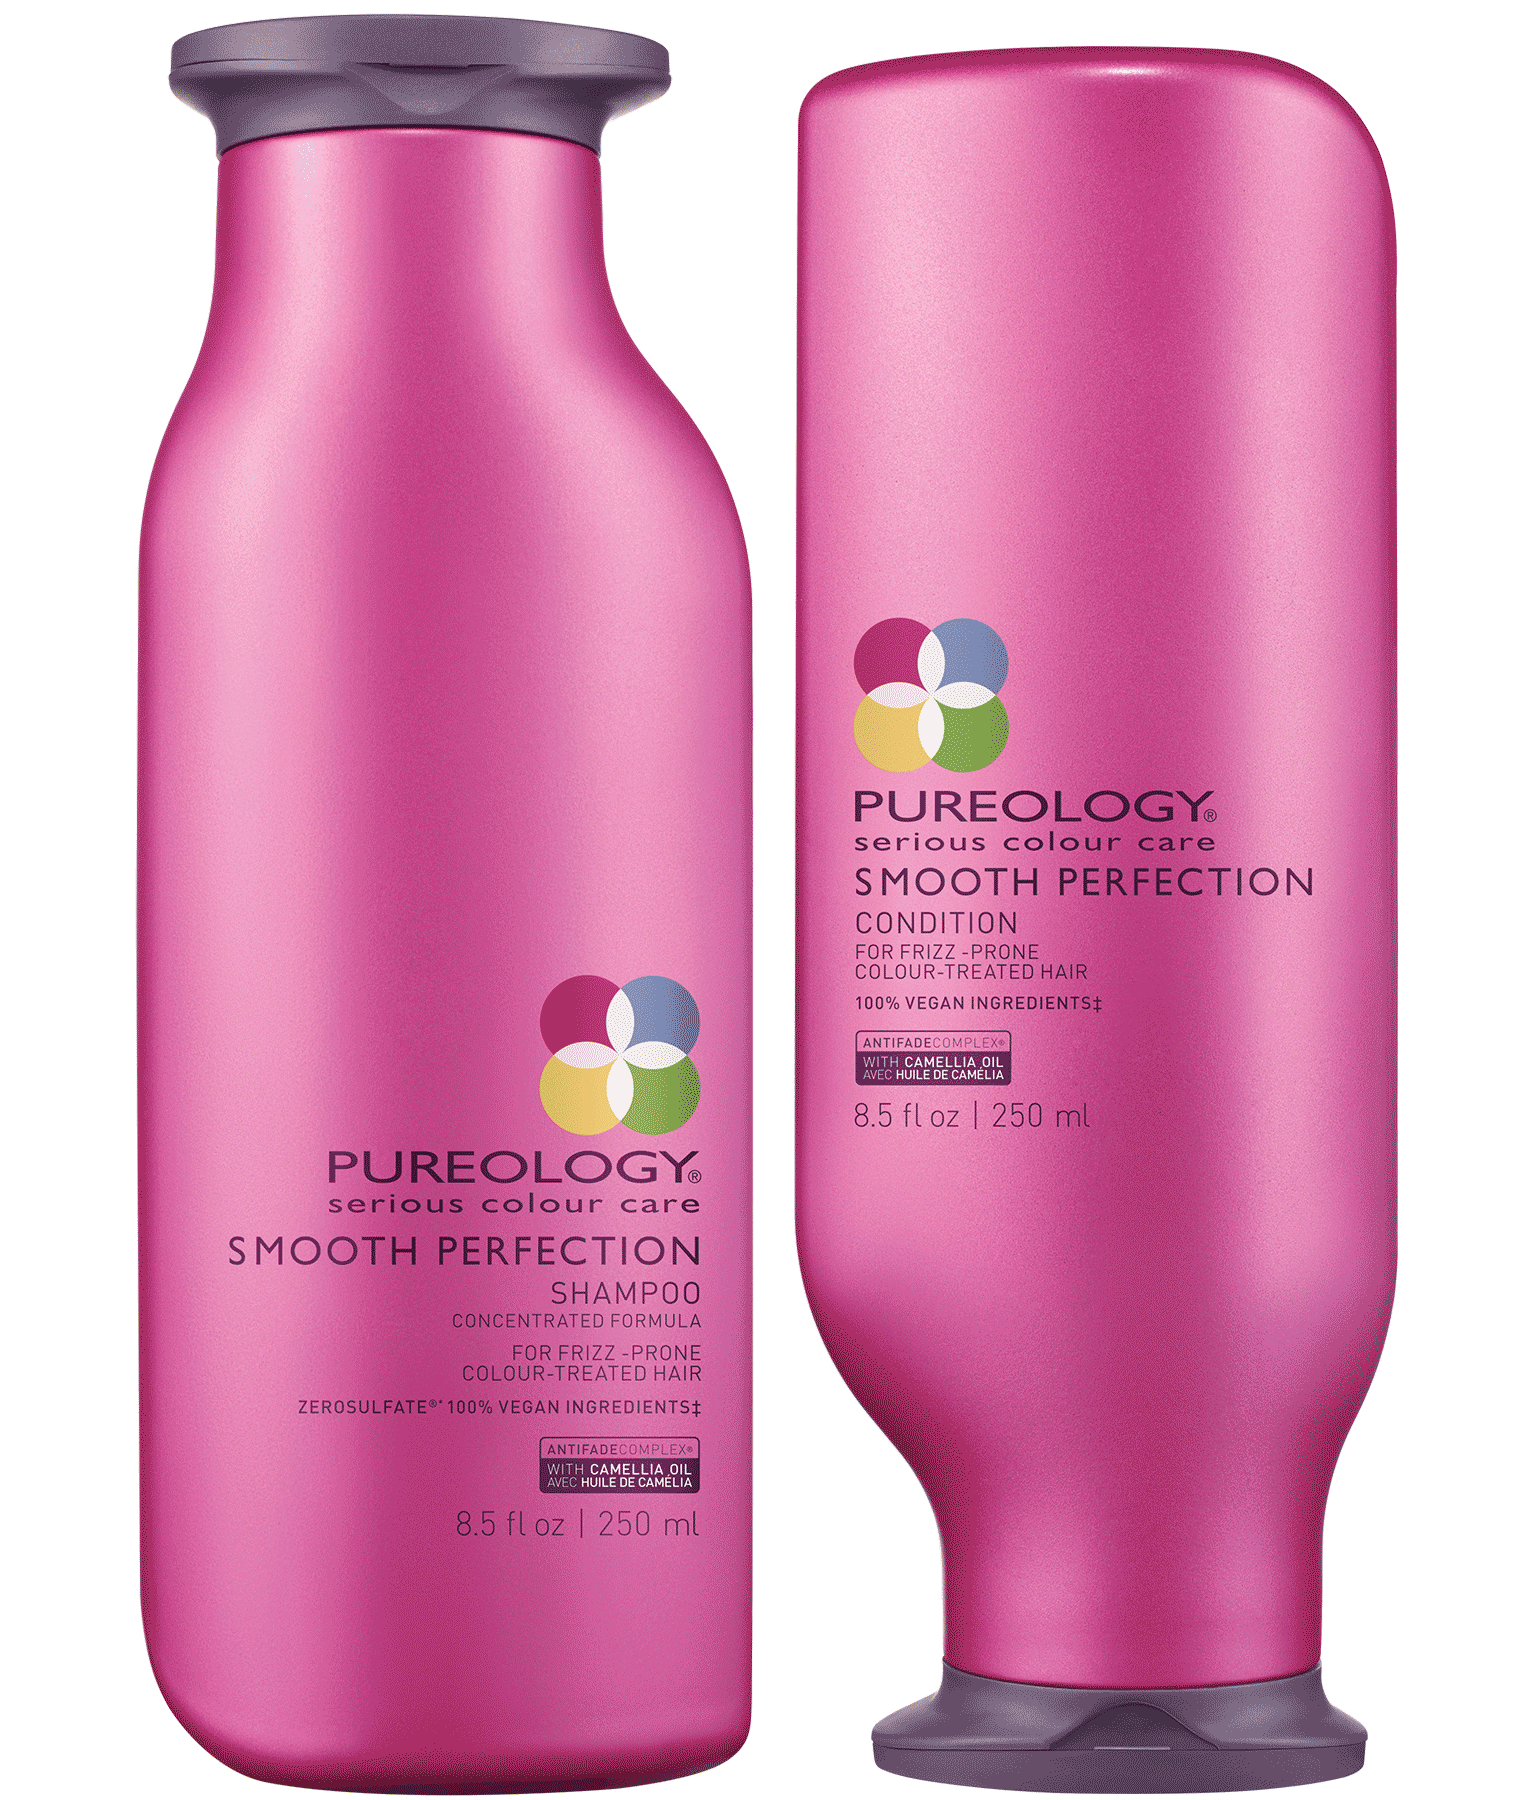 Smooth Perfection Anti Frizz Shampoo Conditioner Duo Pureology